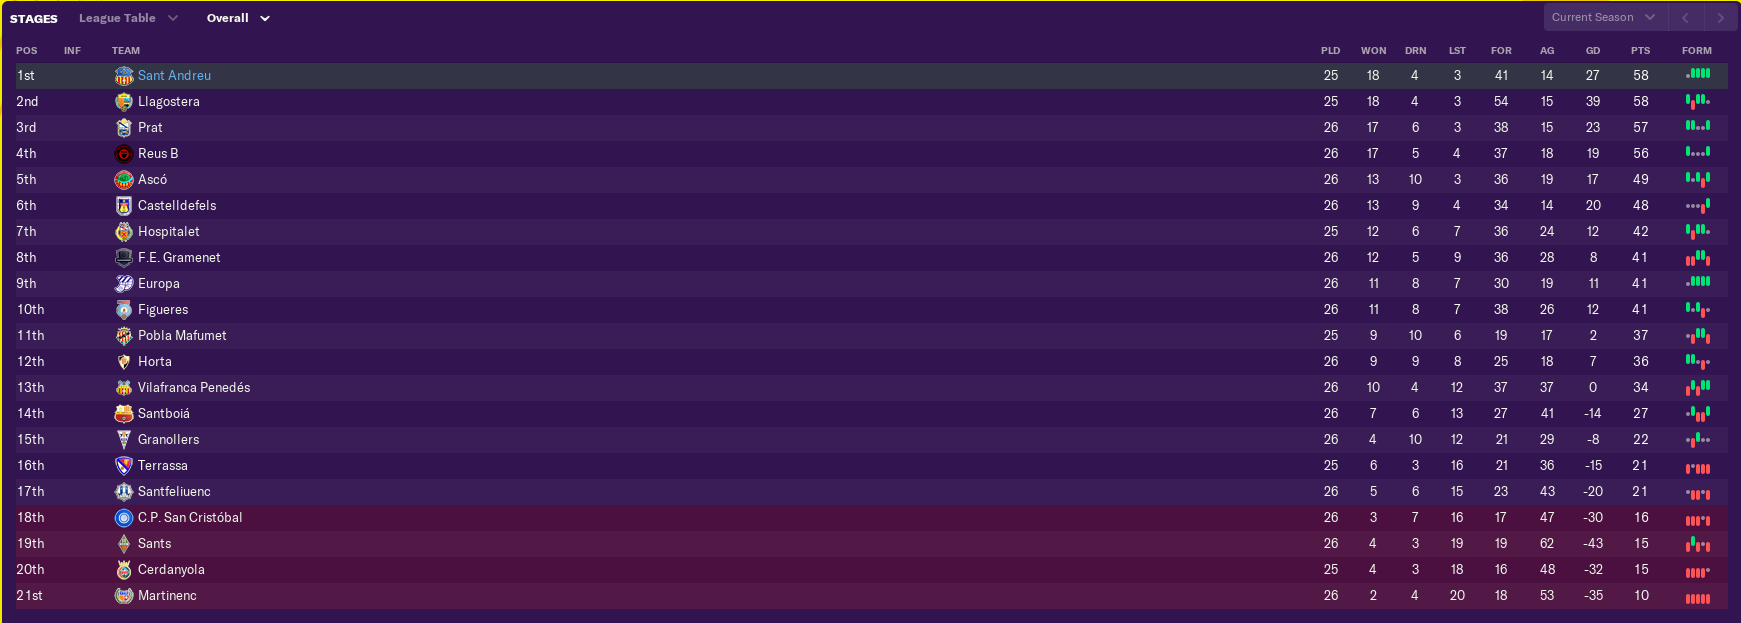 january-league-table.png